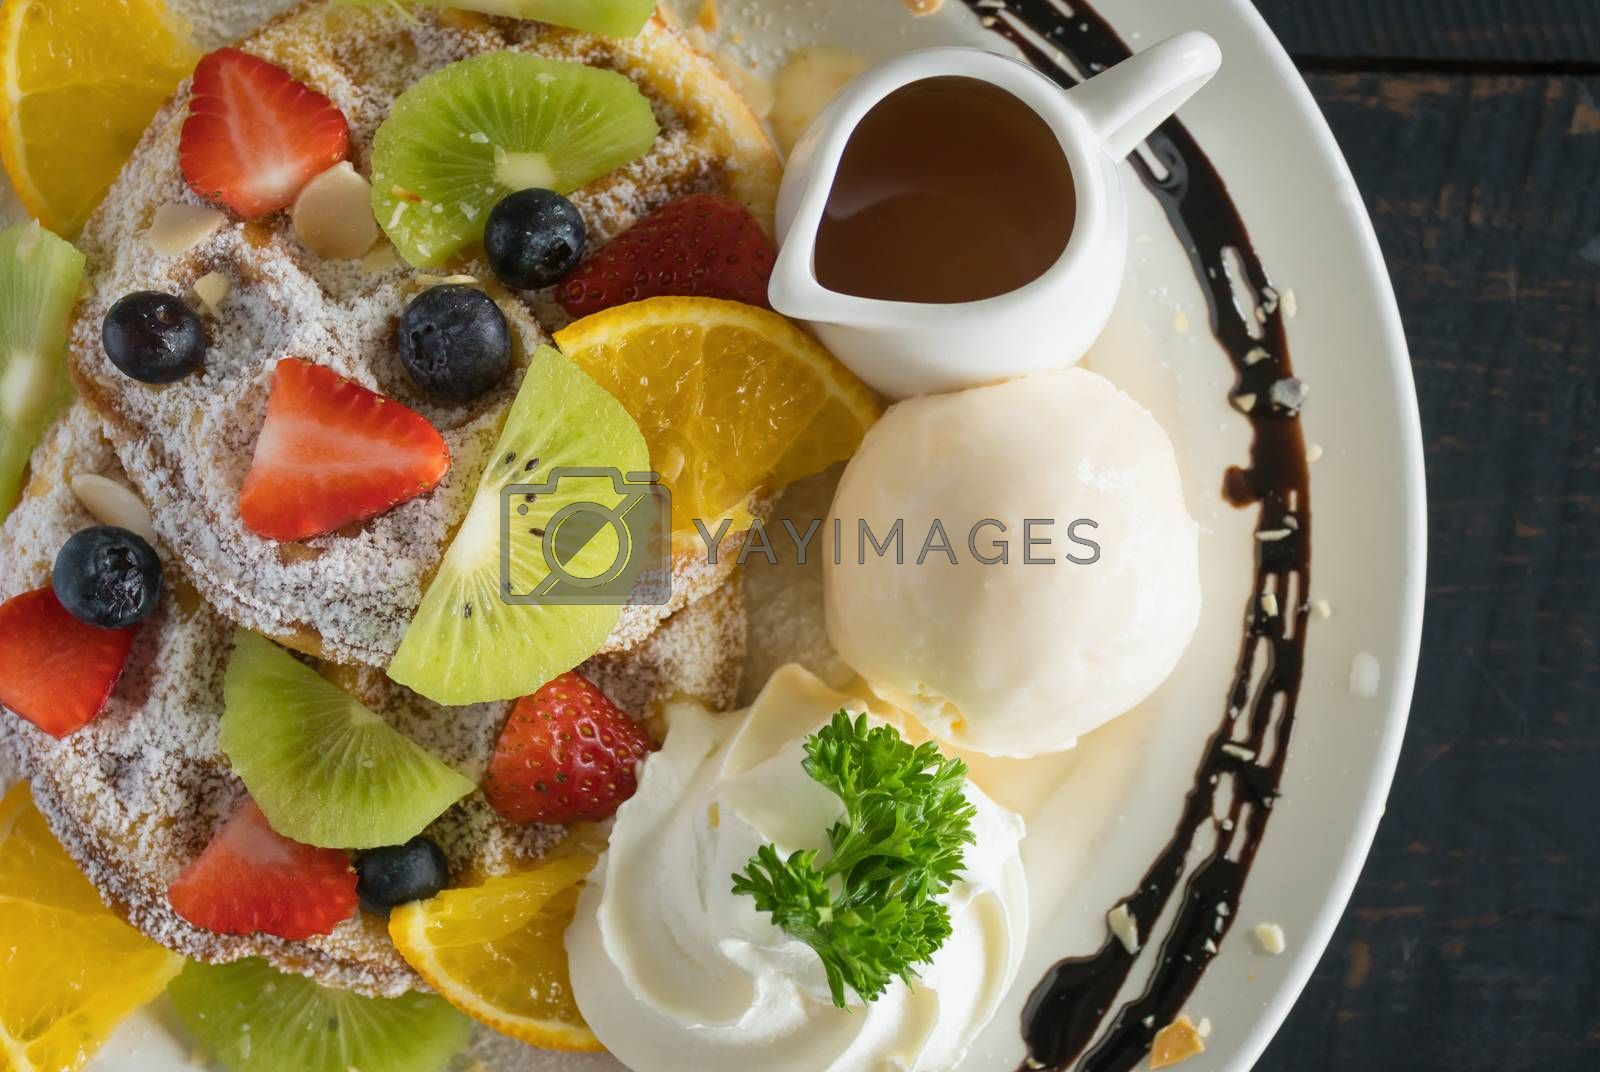 Flatlay Half Strawberry Blueberry Kiwi Lemon Waffle Whipped Cream Ice Cream Chocolate and Syrup Dessert. Fruity dessert for food and drink category